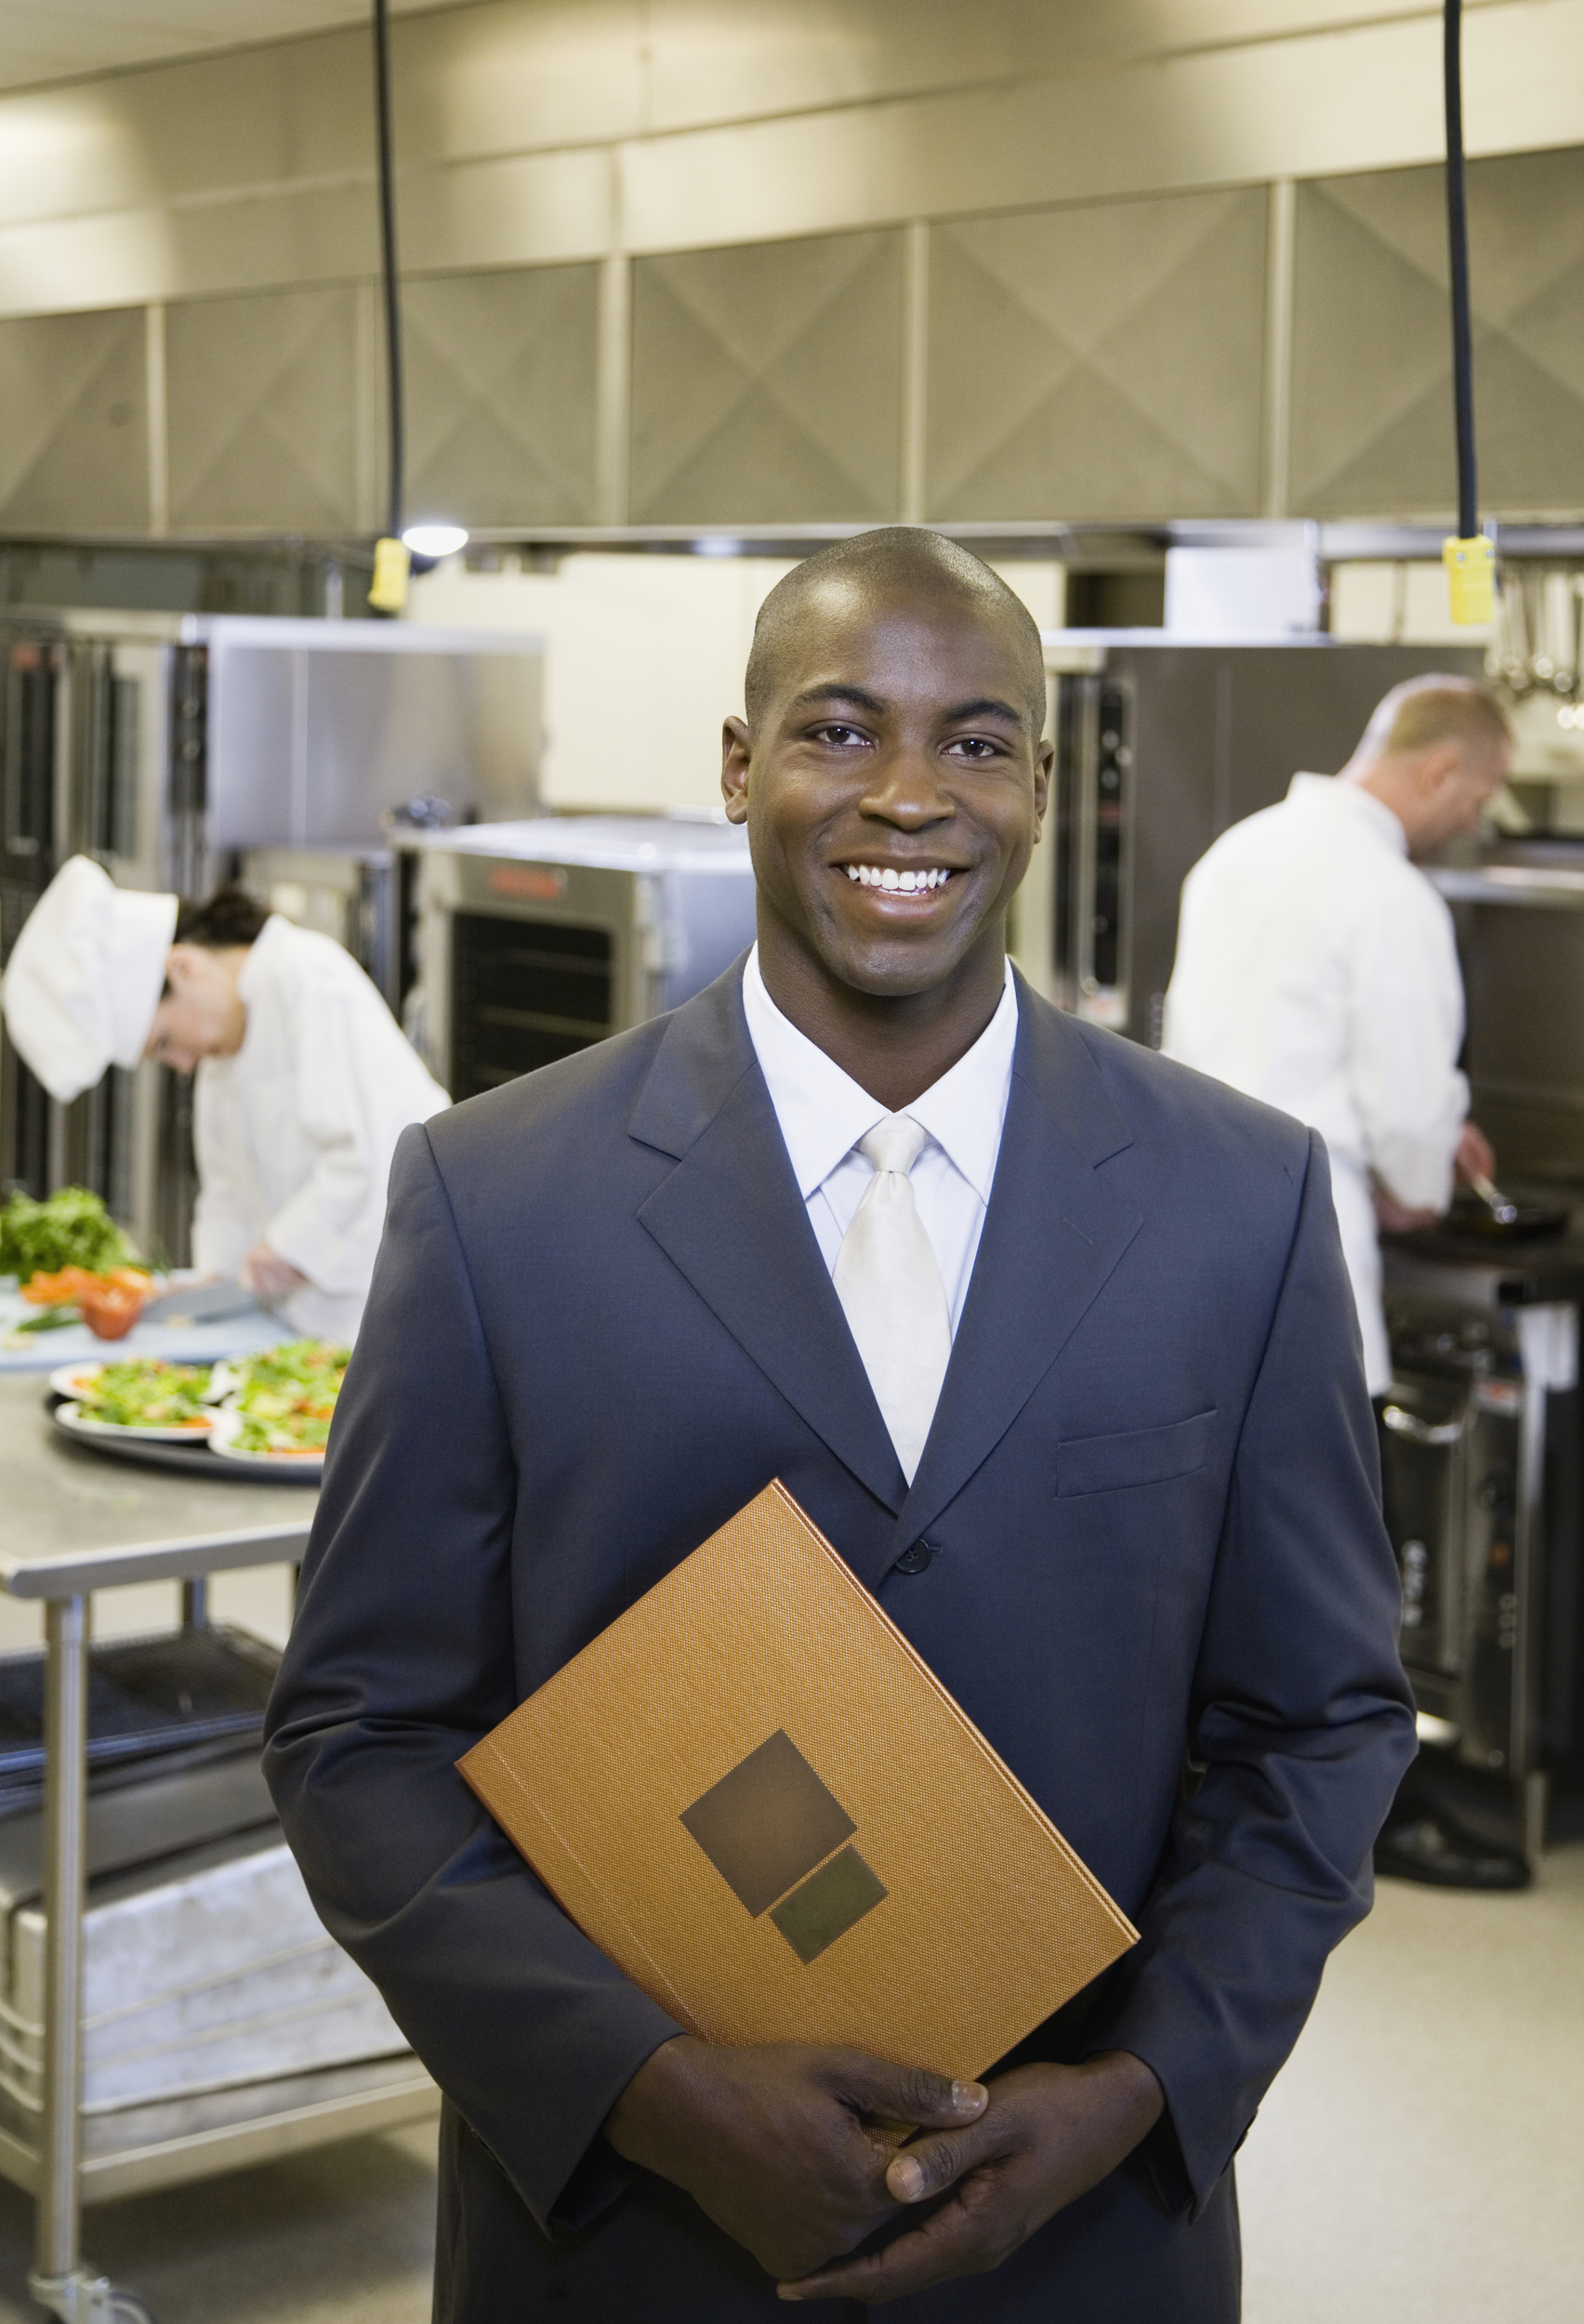 Kitchen Manager Job Description Salary Manager Job Description